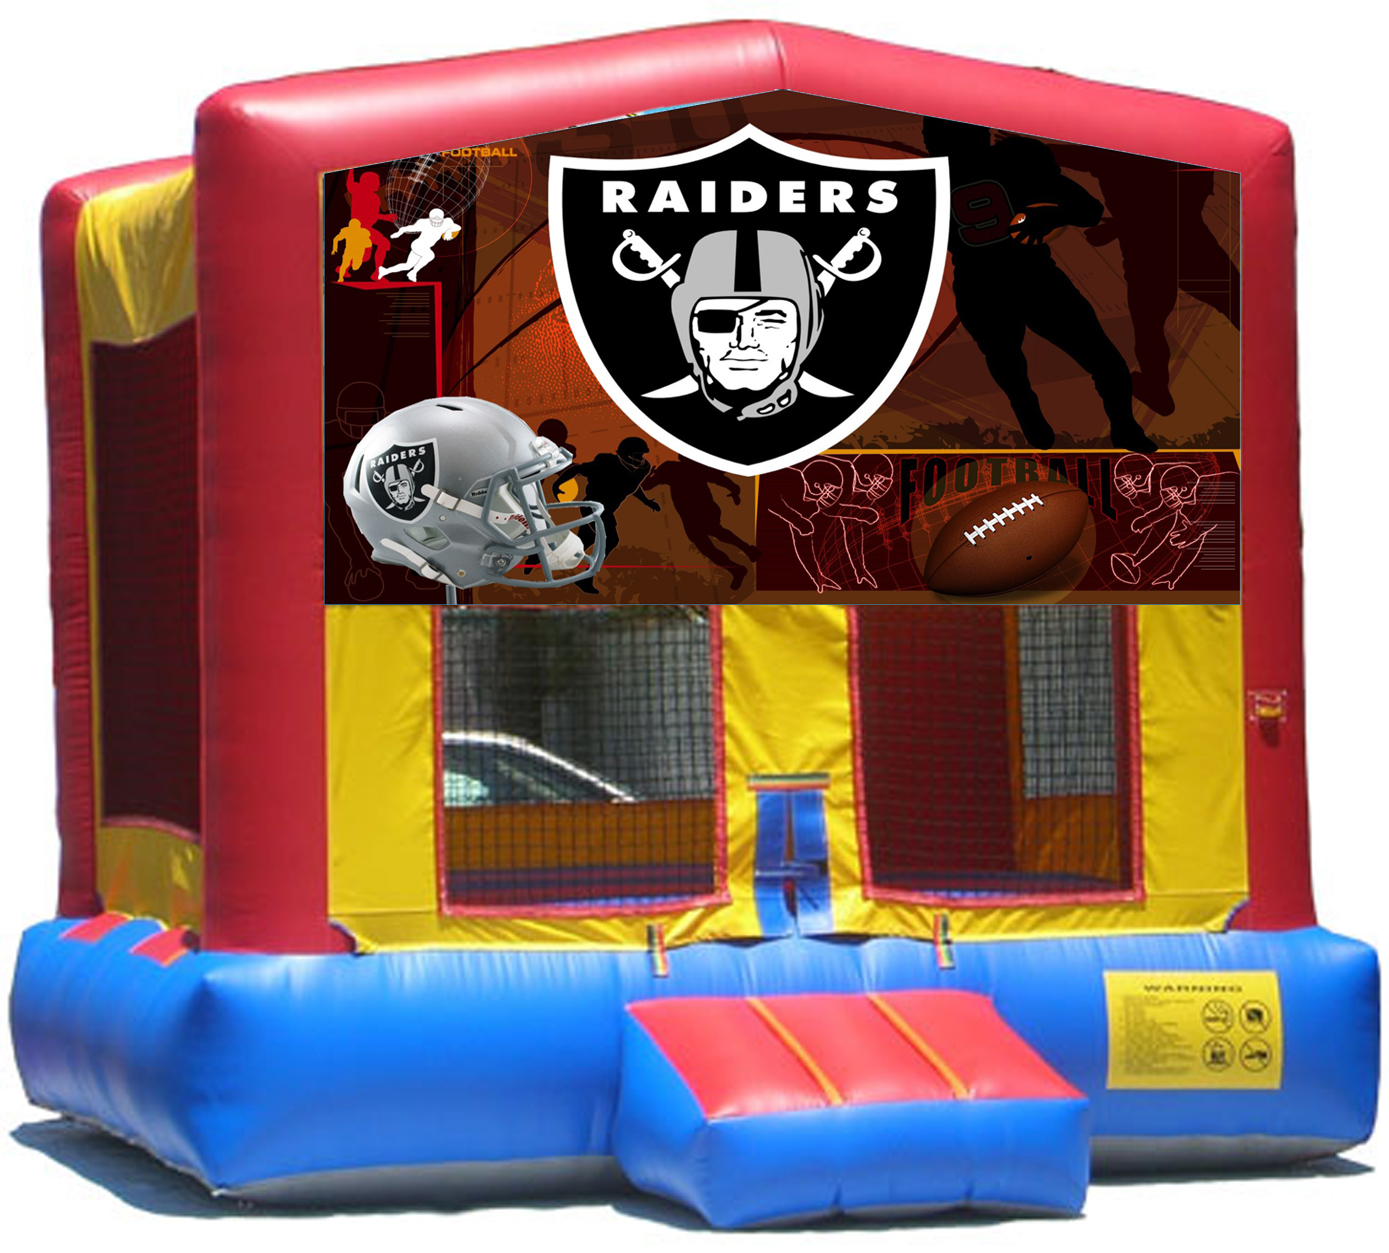 http://www.norcaljump.com/upload/2014-09-06/raiders.jpg